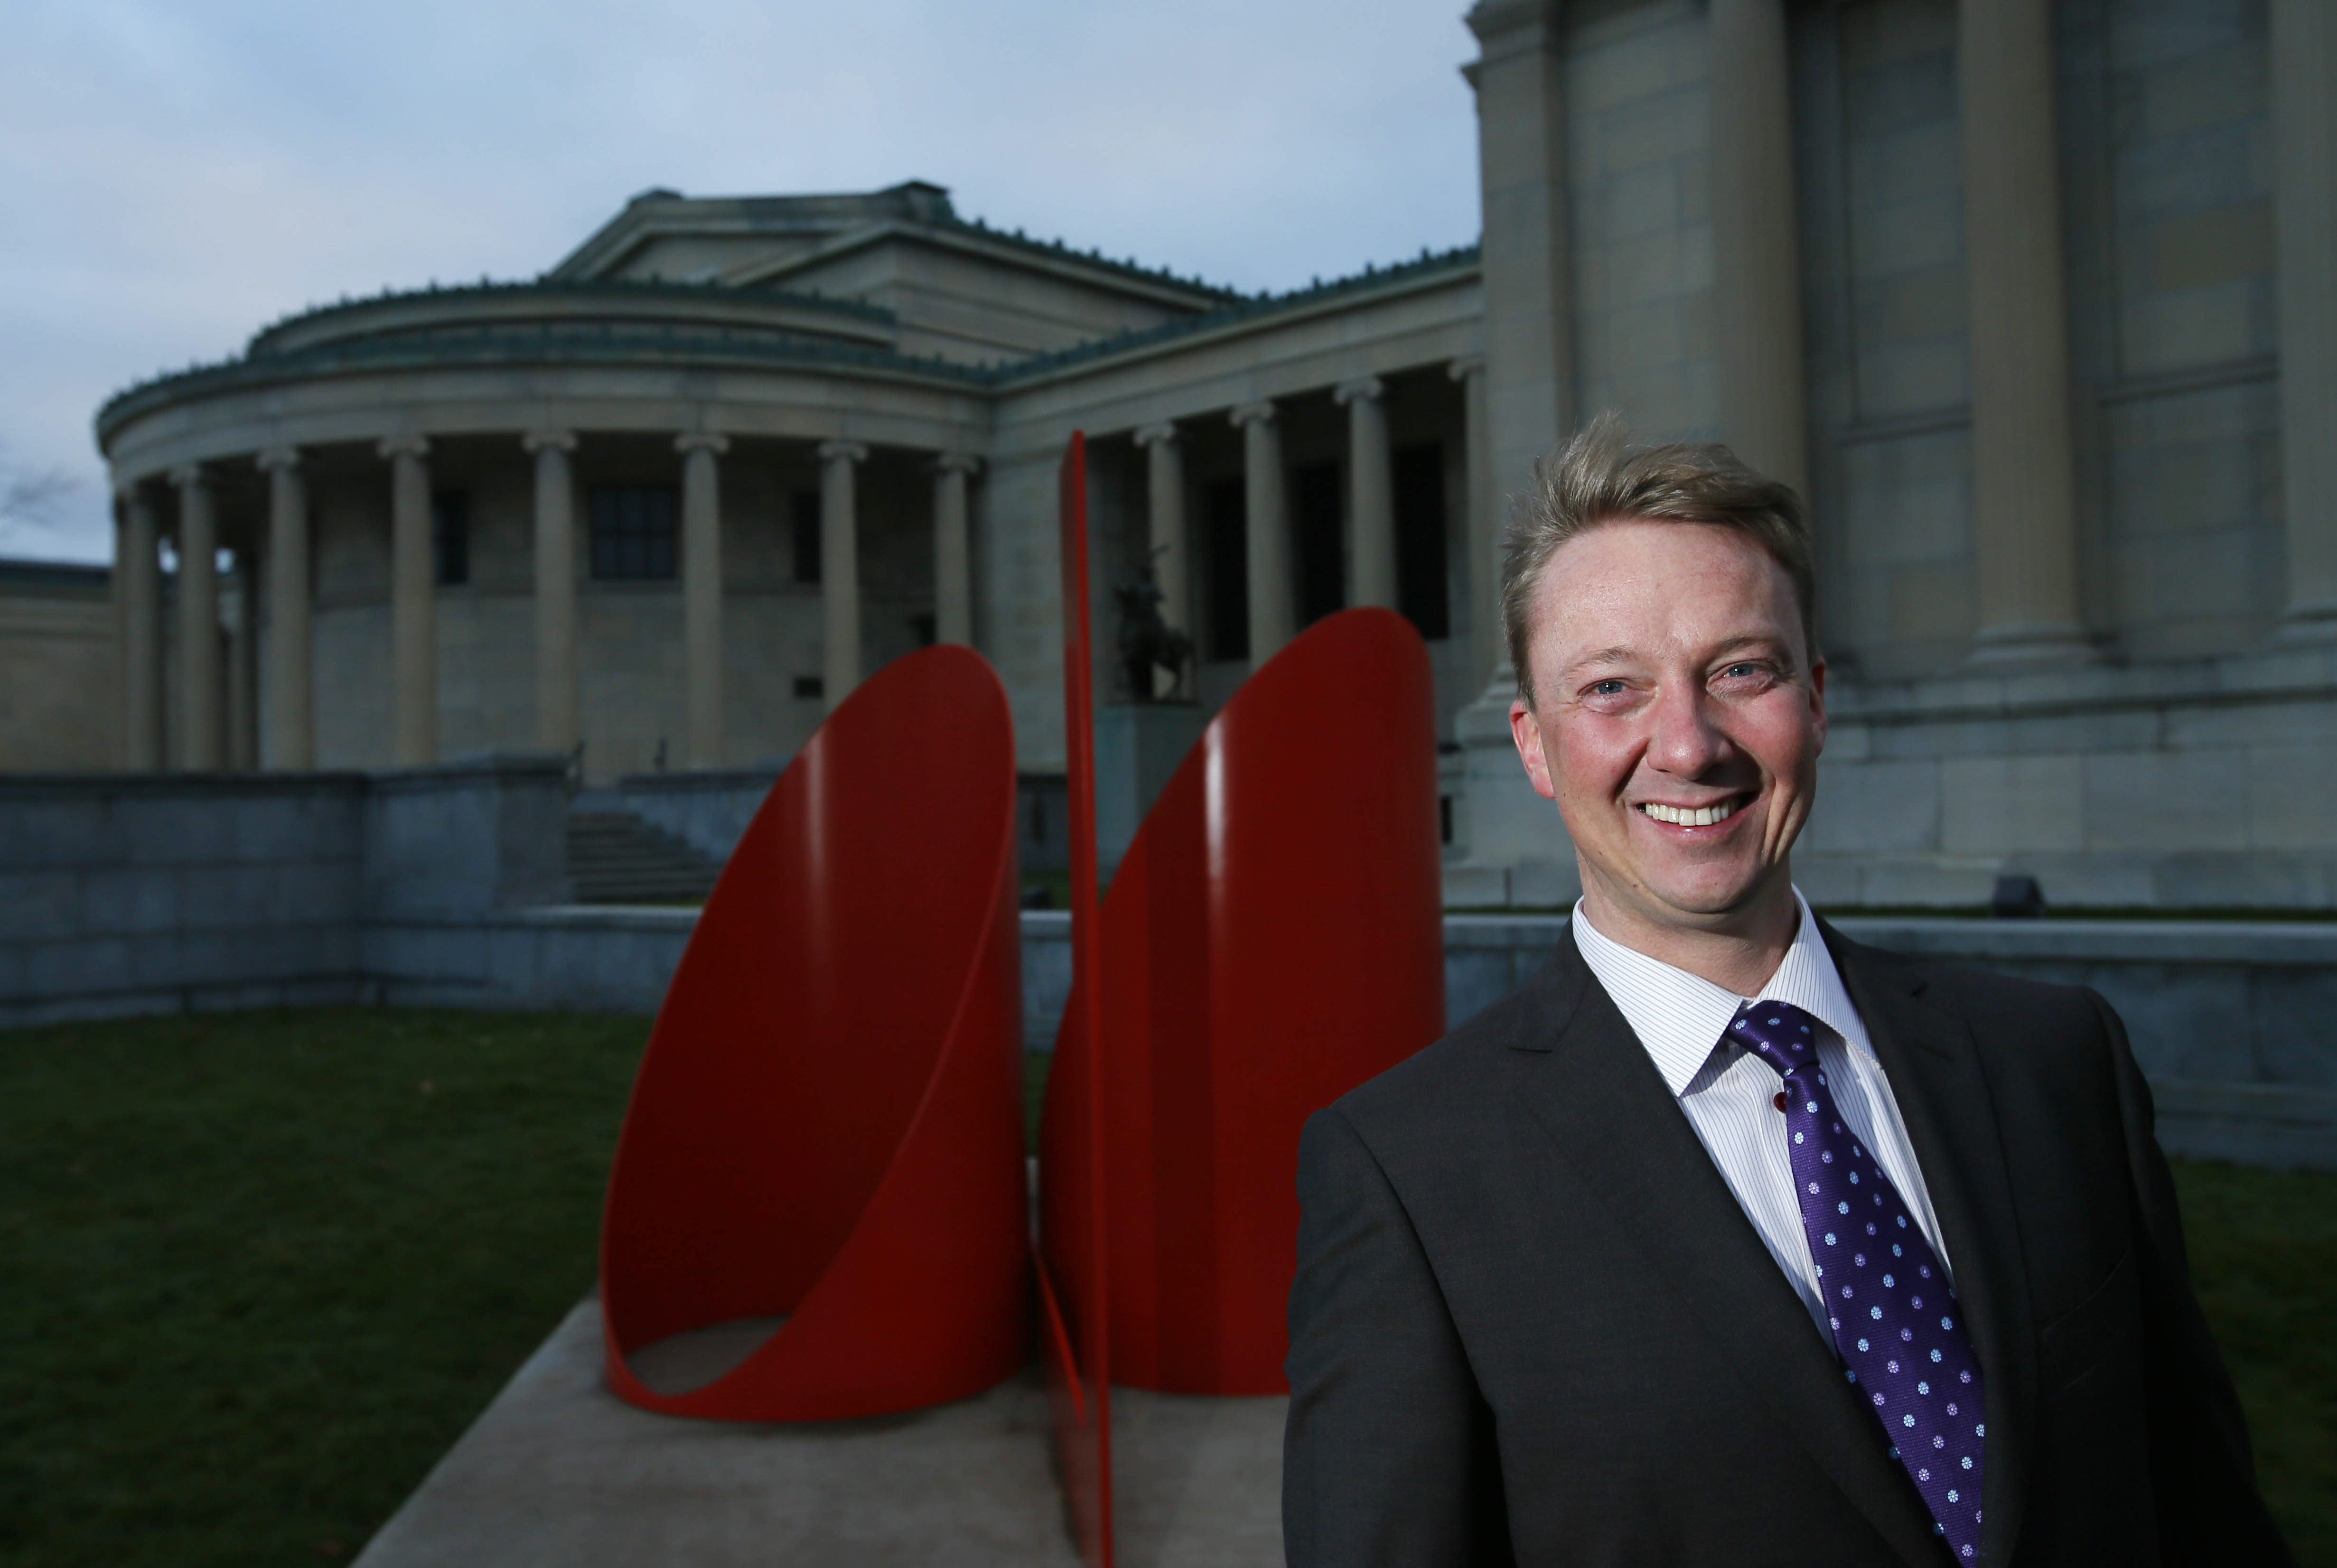 Albright-Knox Art Gallery Director Janne Gallen-Kallela-Sirén has put behind him the controversy involving a proposed museum in Helsinki.